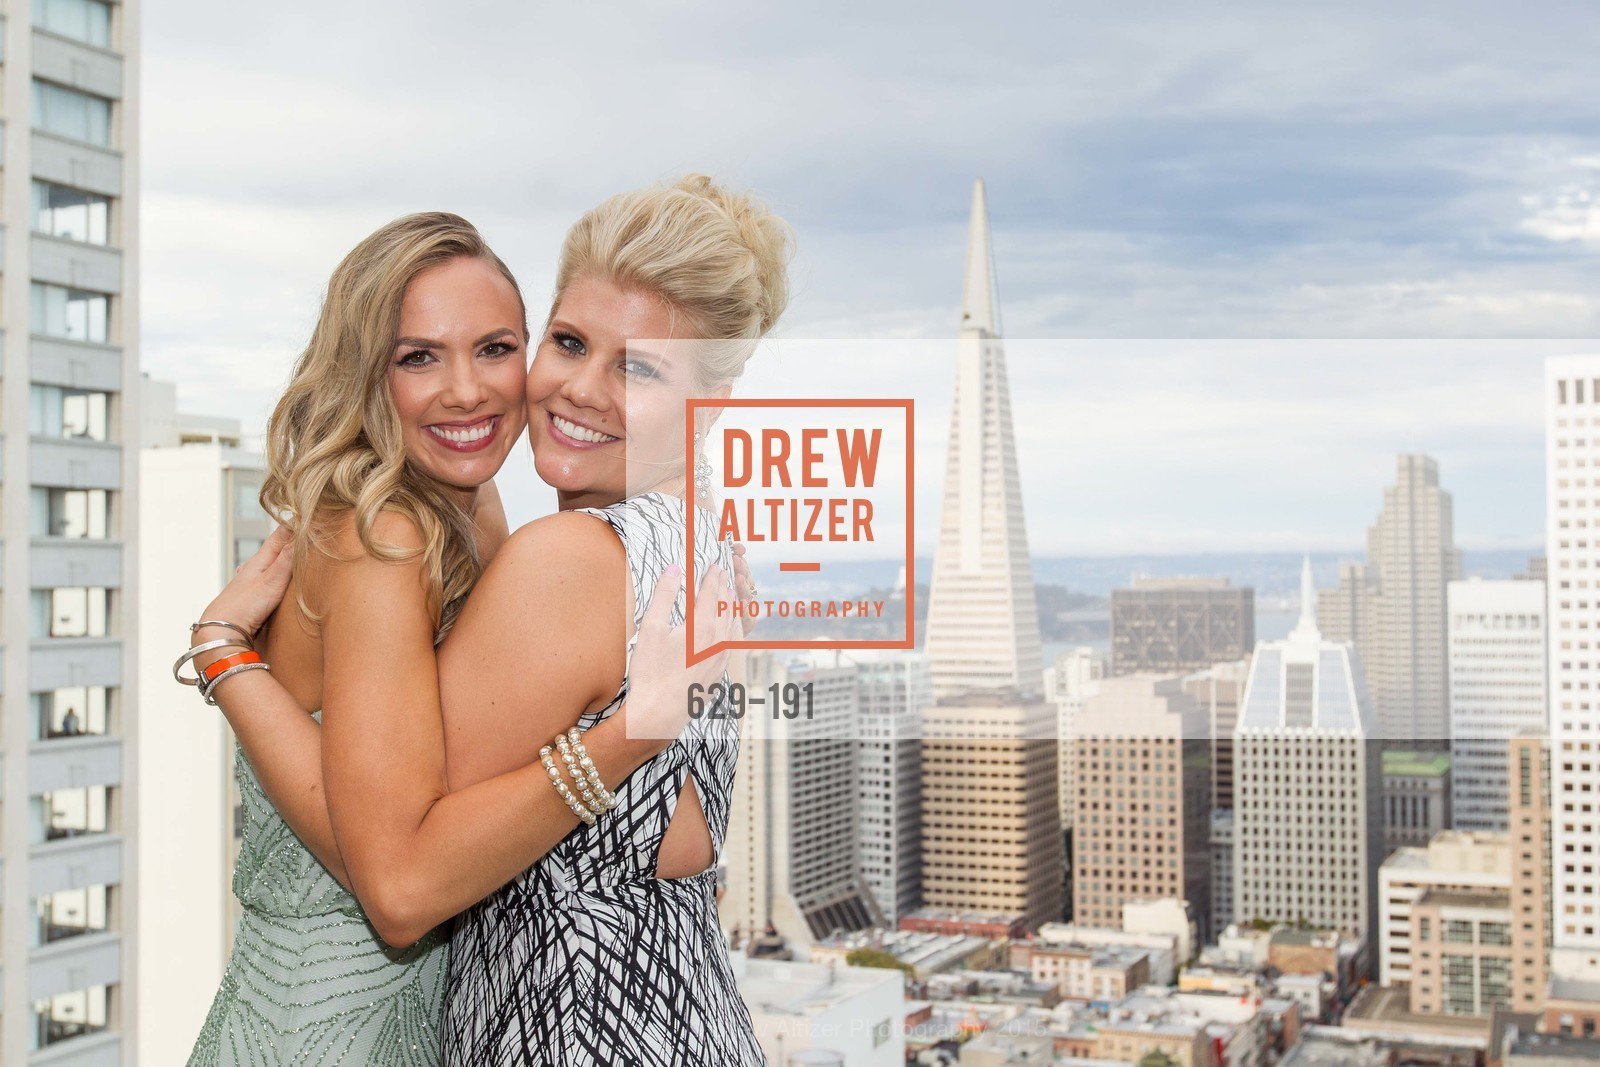 Extras, Spinsters of San Francisco Annual Ball 2015, June 28th, 2015, Photo,Drew Altizer, Drew Altizer Photography, full-service agency, private events, San Francisco photographer, photographer california